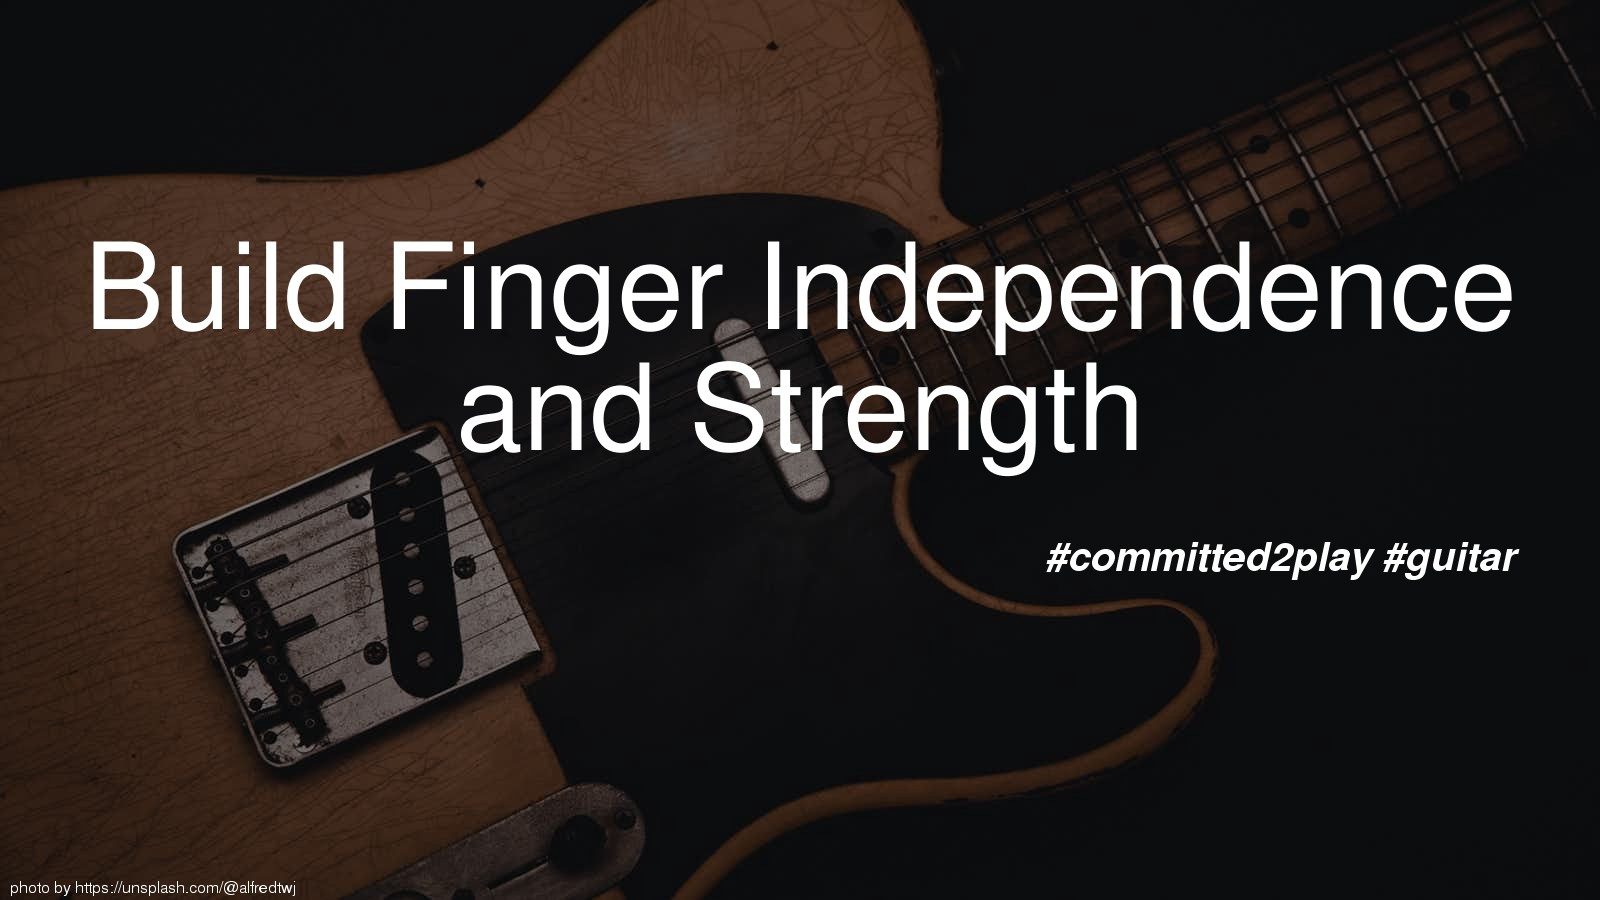 Build Finger Independence and Strength